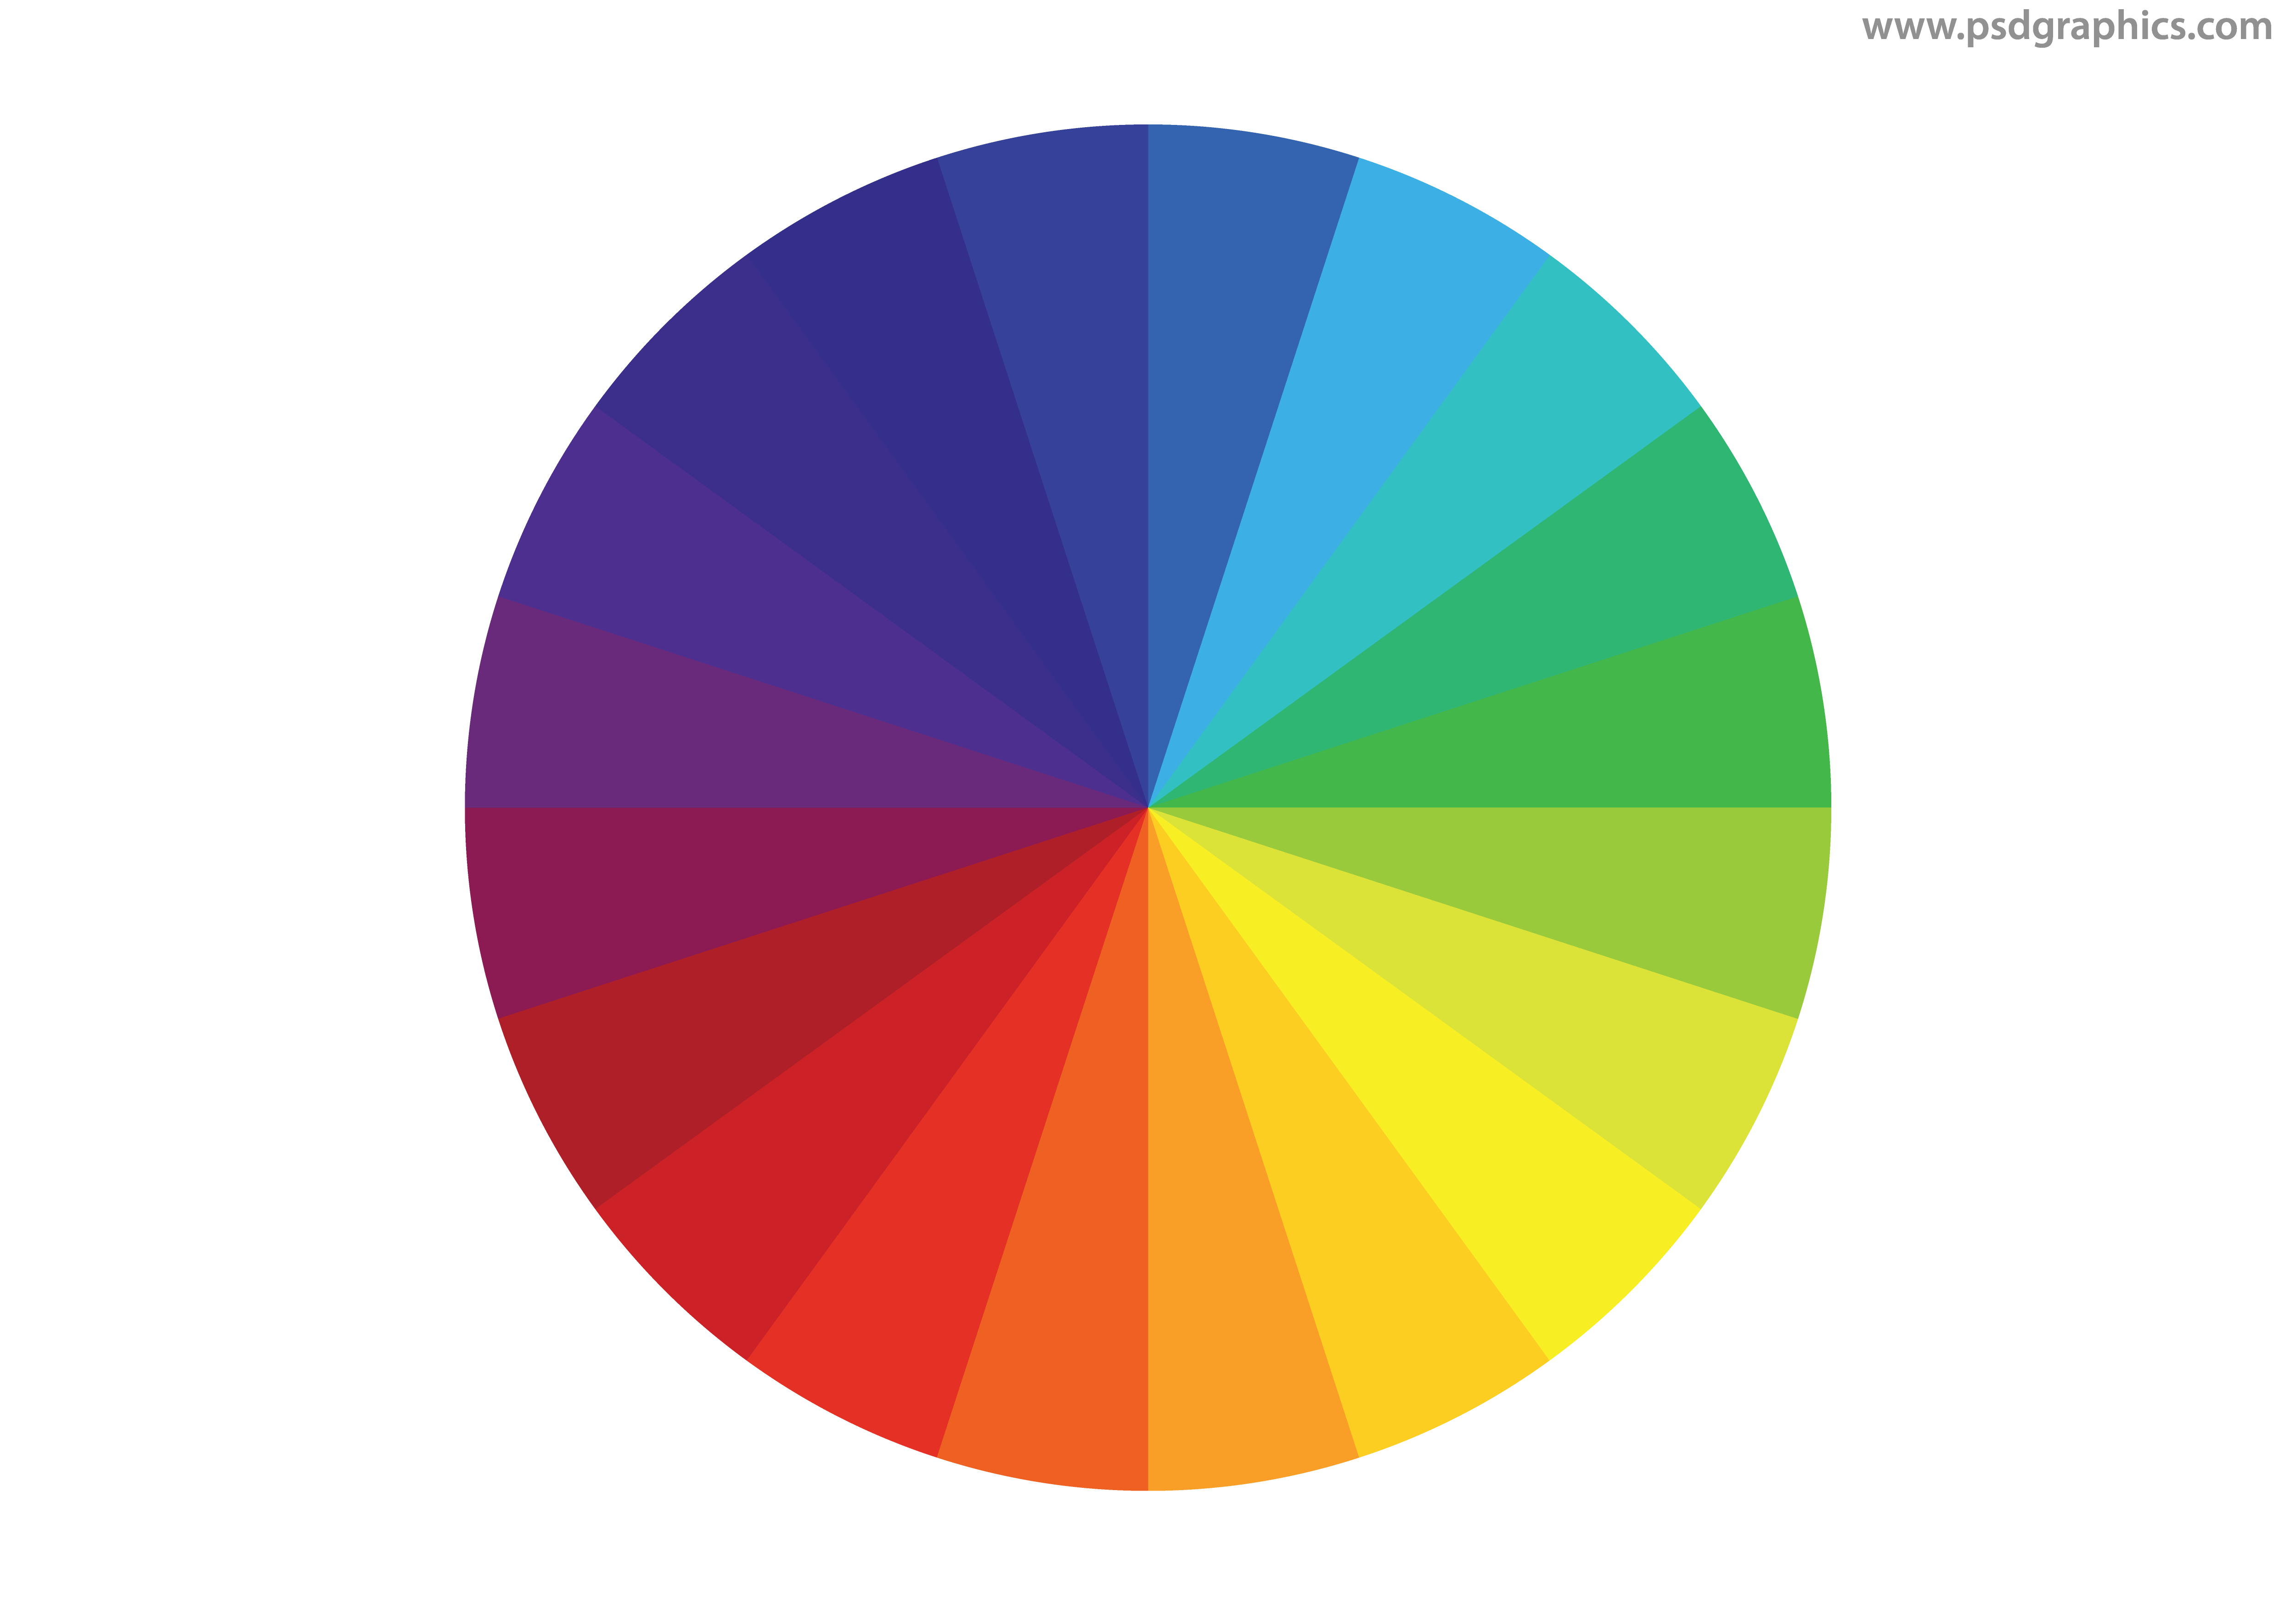 Color wheel png. Vector psdgraphics